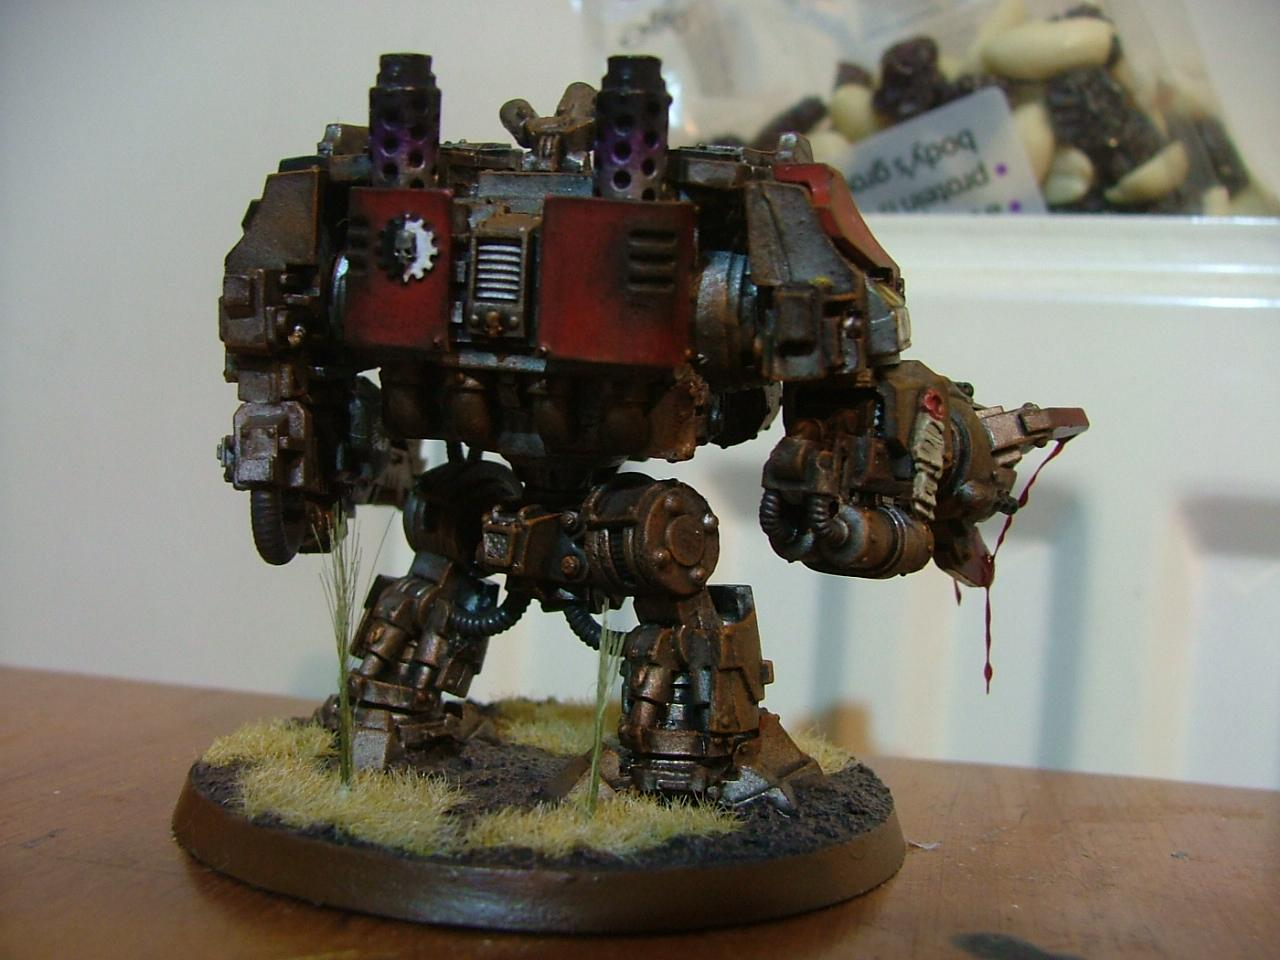 Dreadnought,  Iron clad dreadnought